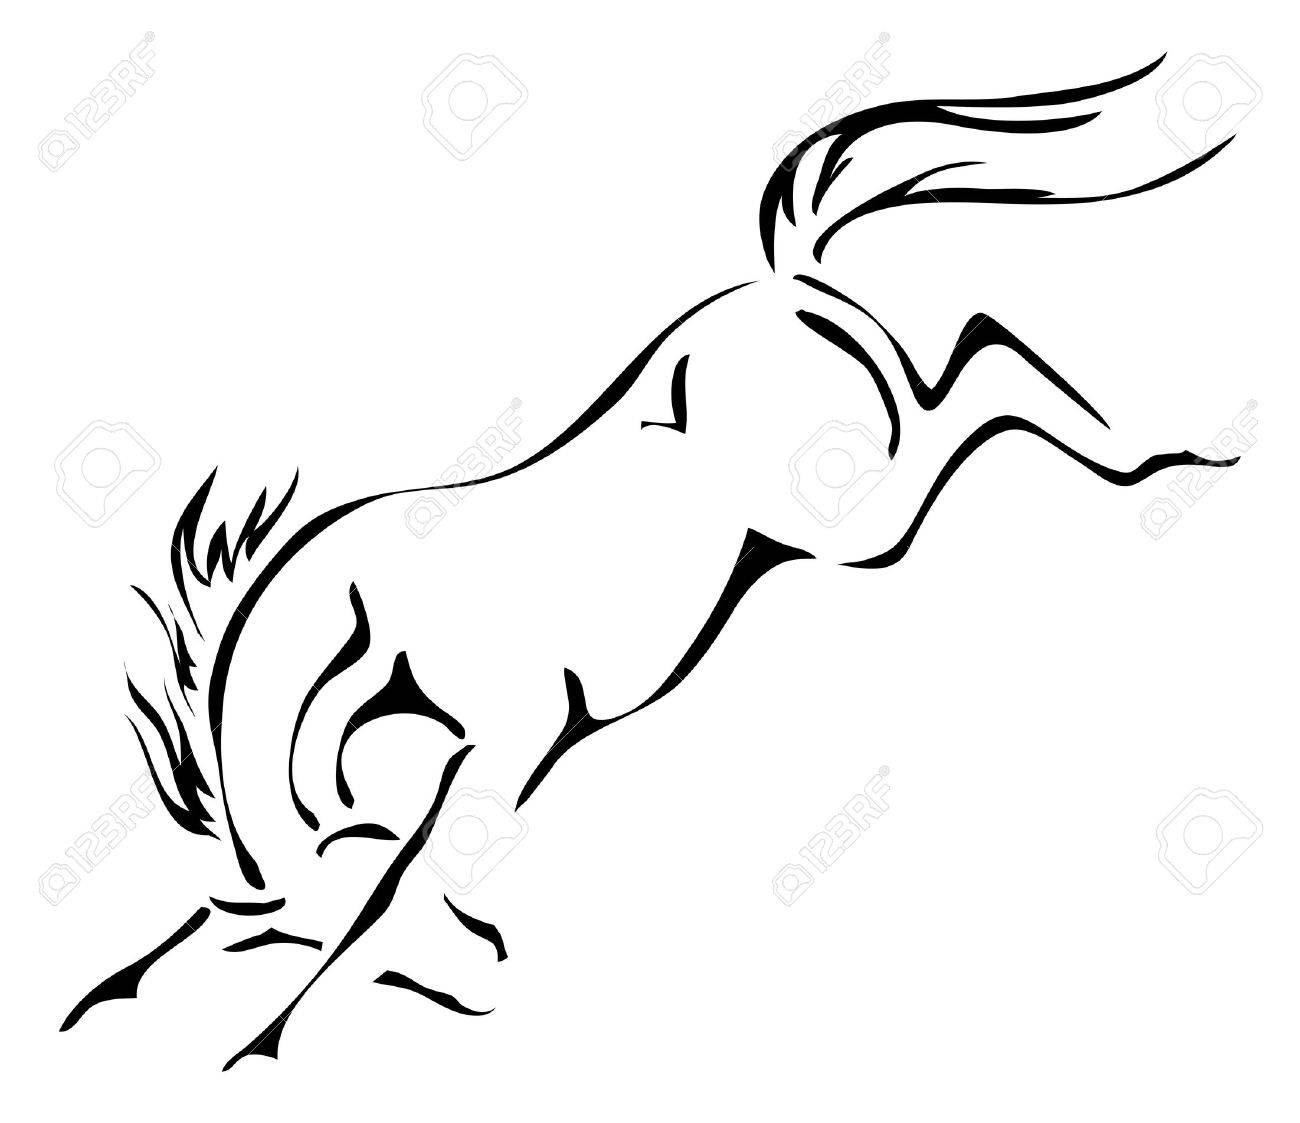 black and white outlines of bucking horse royalty free cliparts rh 123rf com